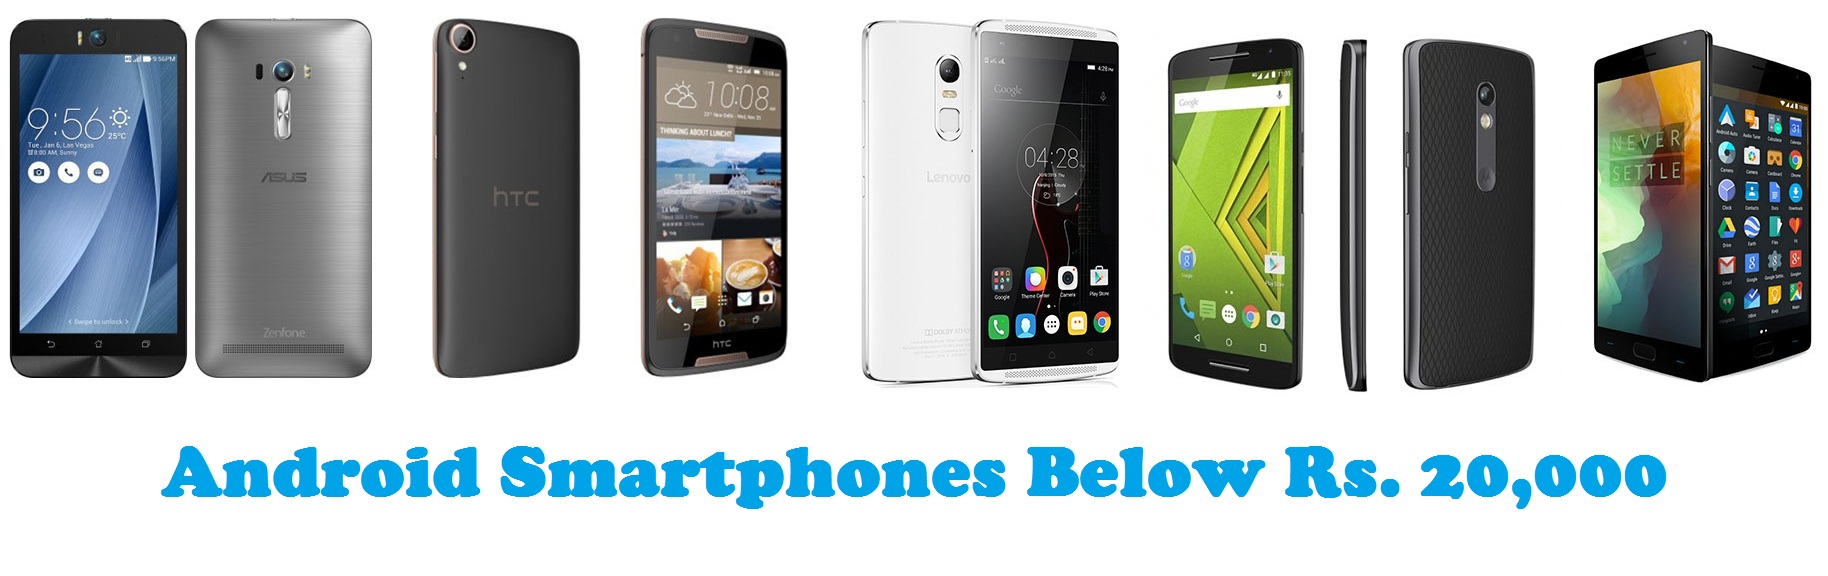 Smartphones TechBuzzes